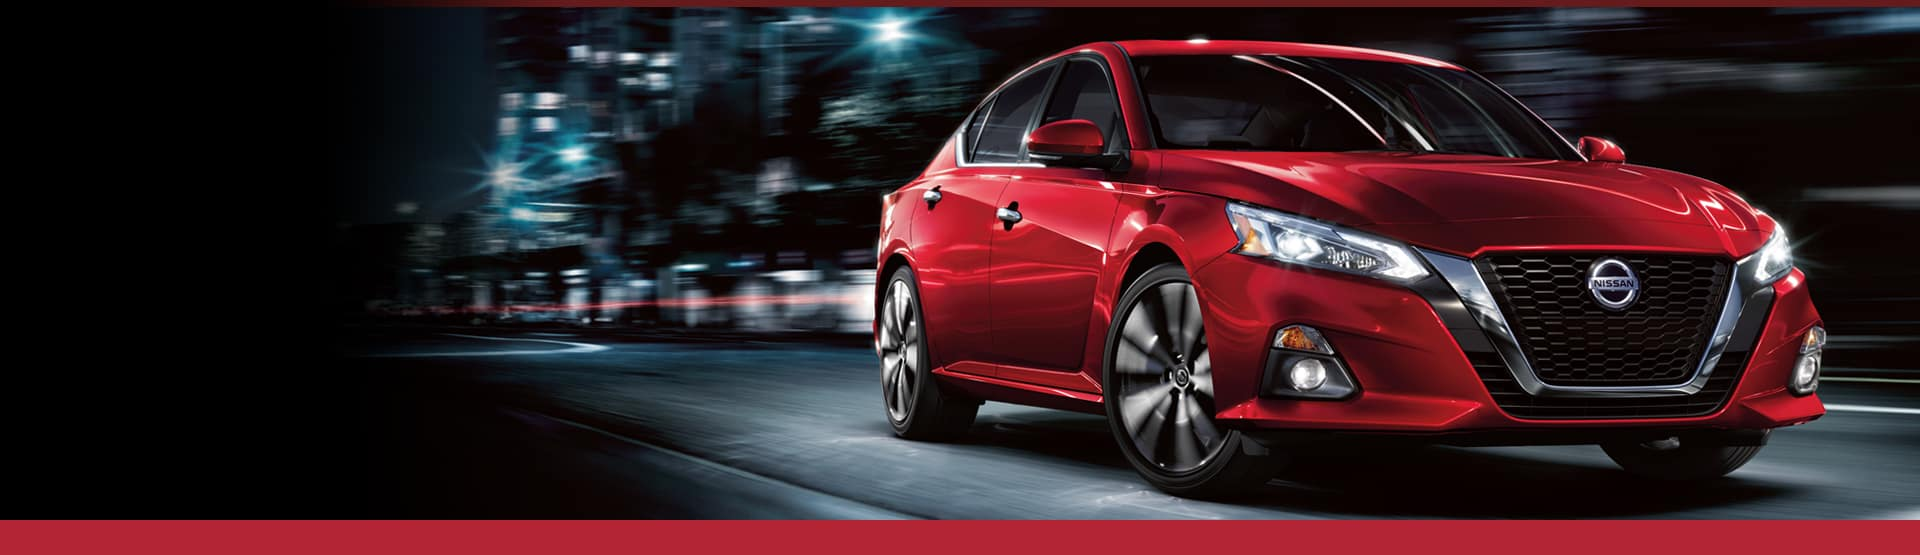 All-New 2019 Nissan Altima | Gastonia NC | Serving the Greater